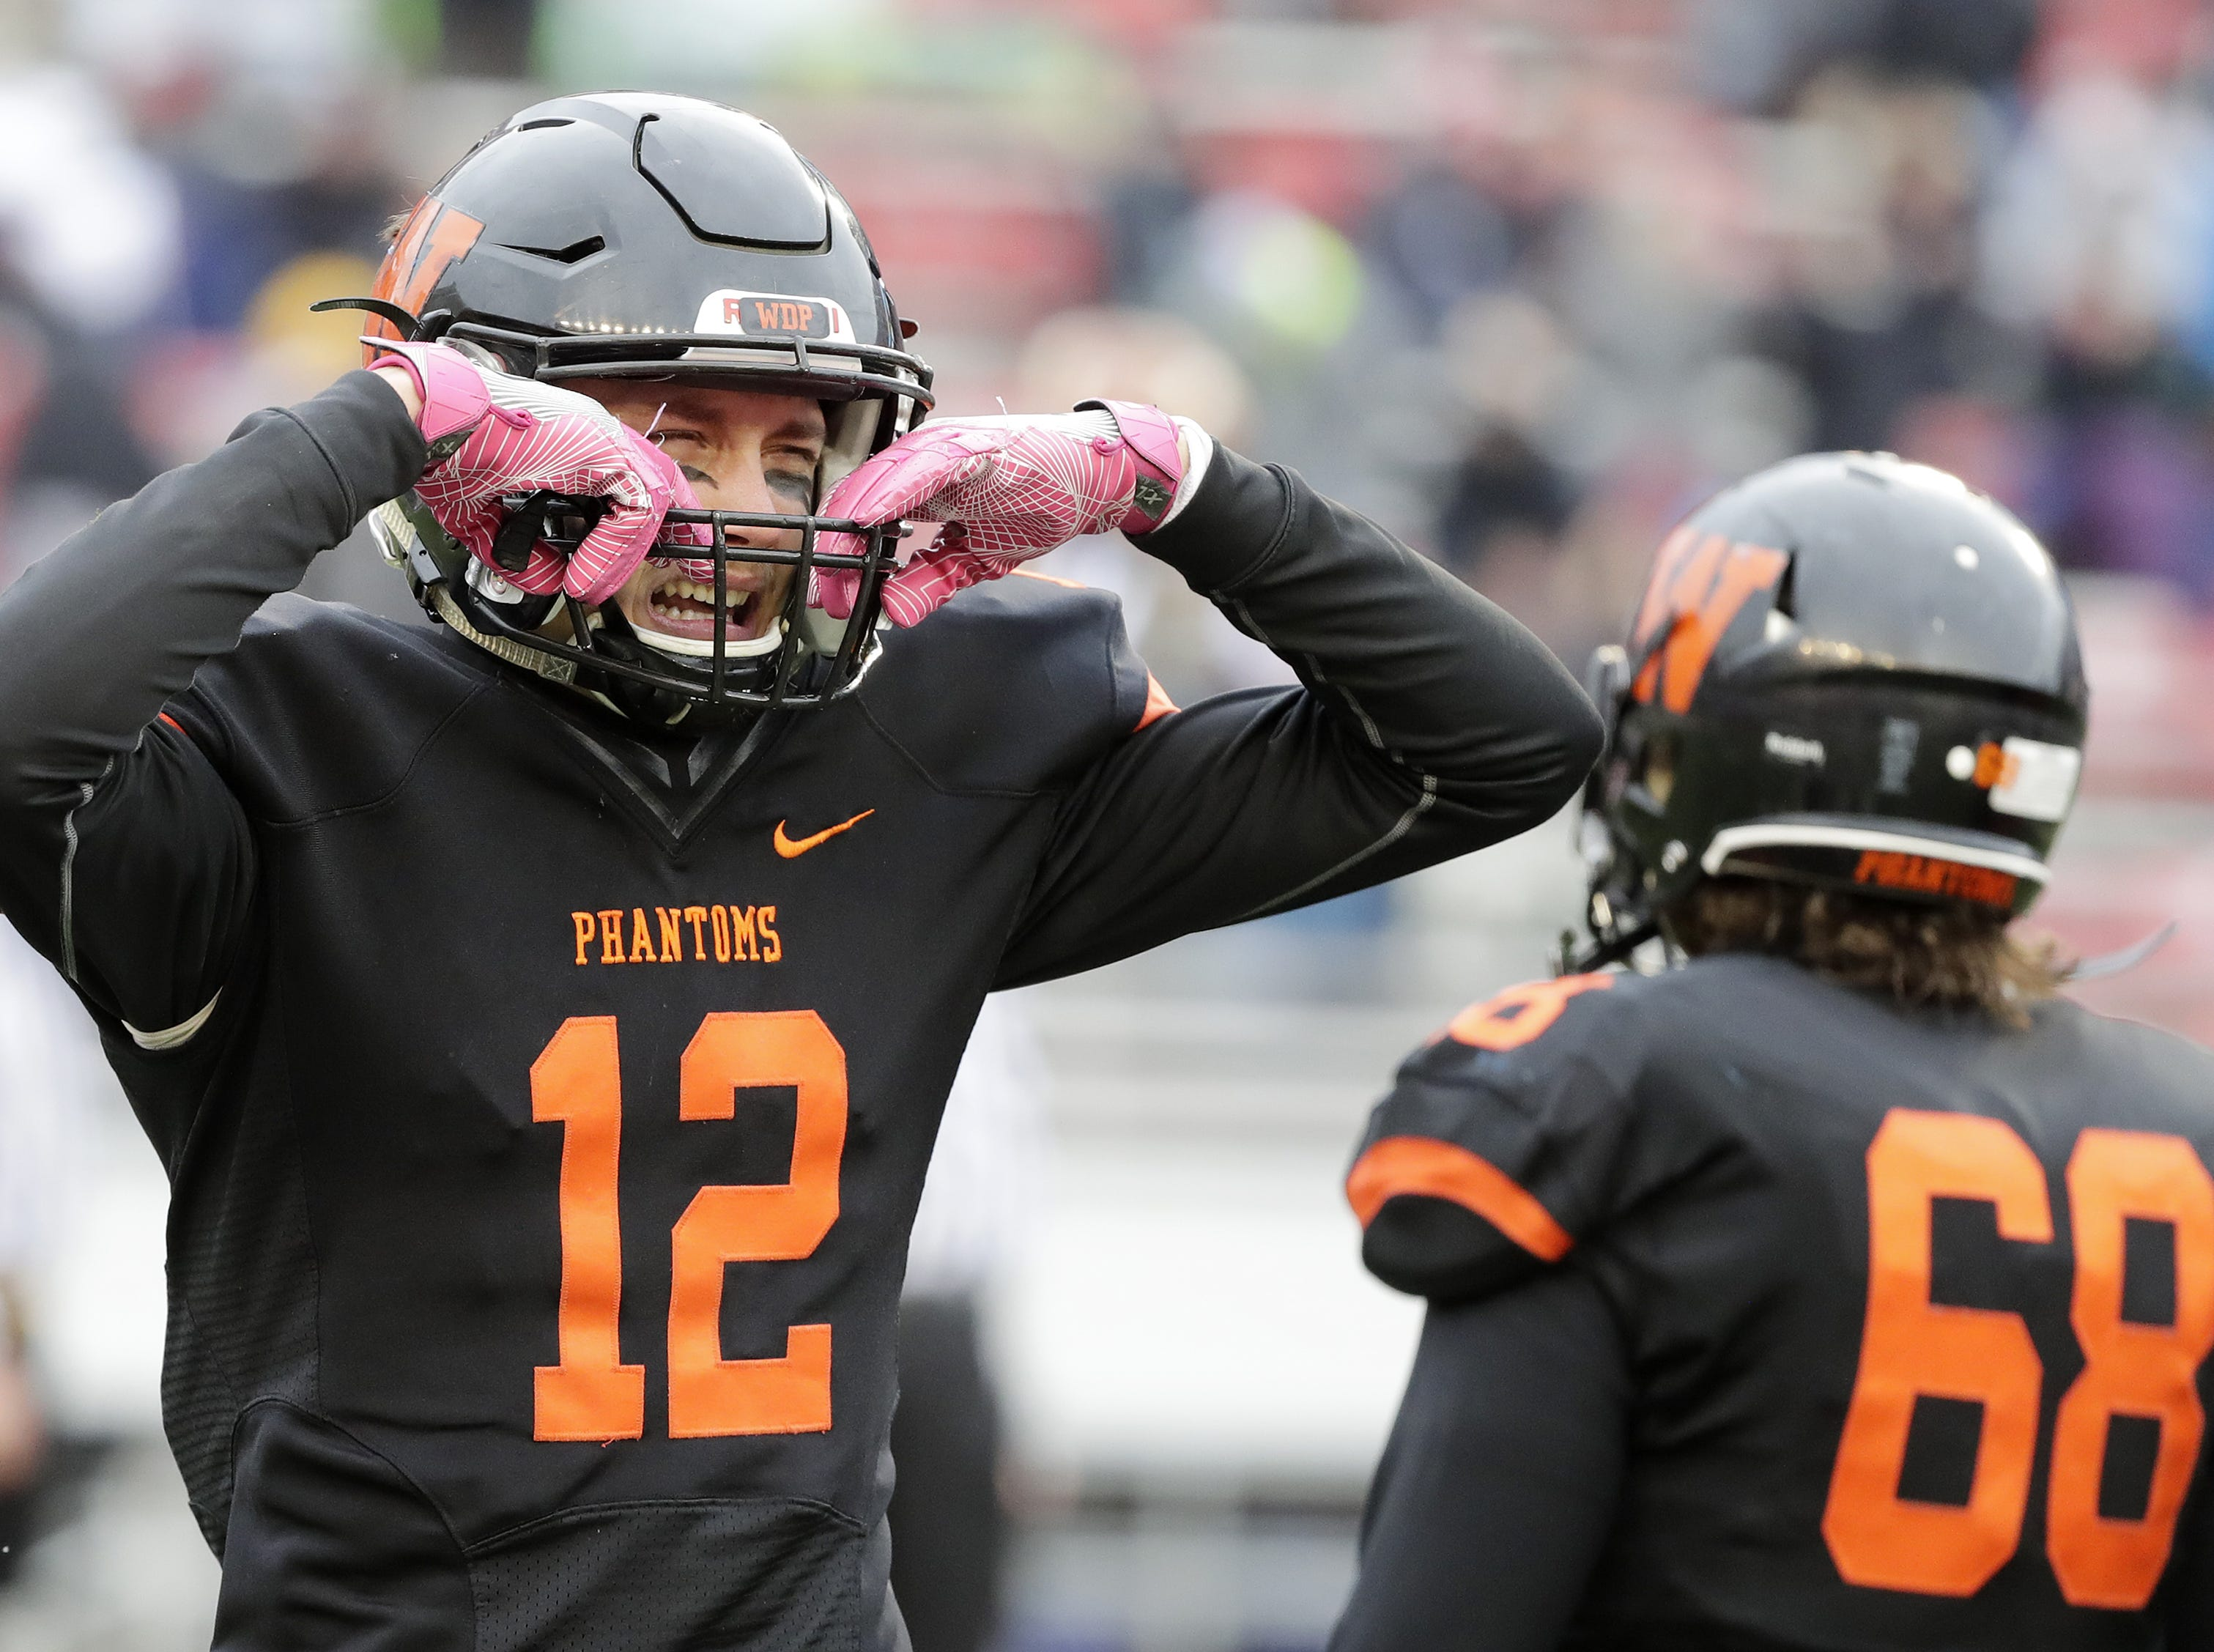 West De Pere's John Edinger (12) walks off the field after the Phantoms lost to Catholic Memorial in the WIAA Division 3 championship game at Camp Randall Stadium on Friday, November 16, 2018 in Madison, Wis.